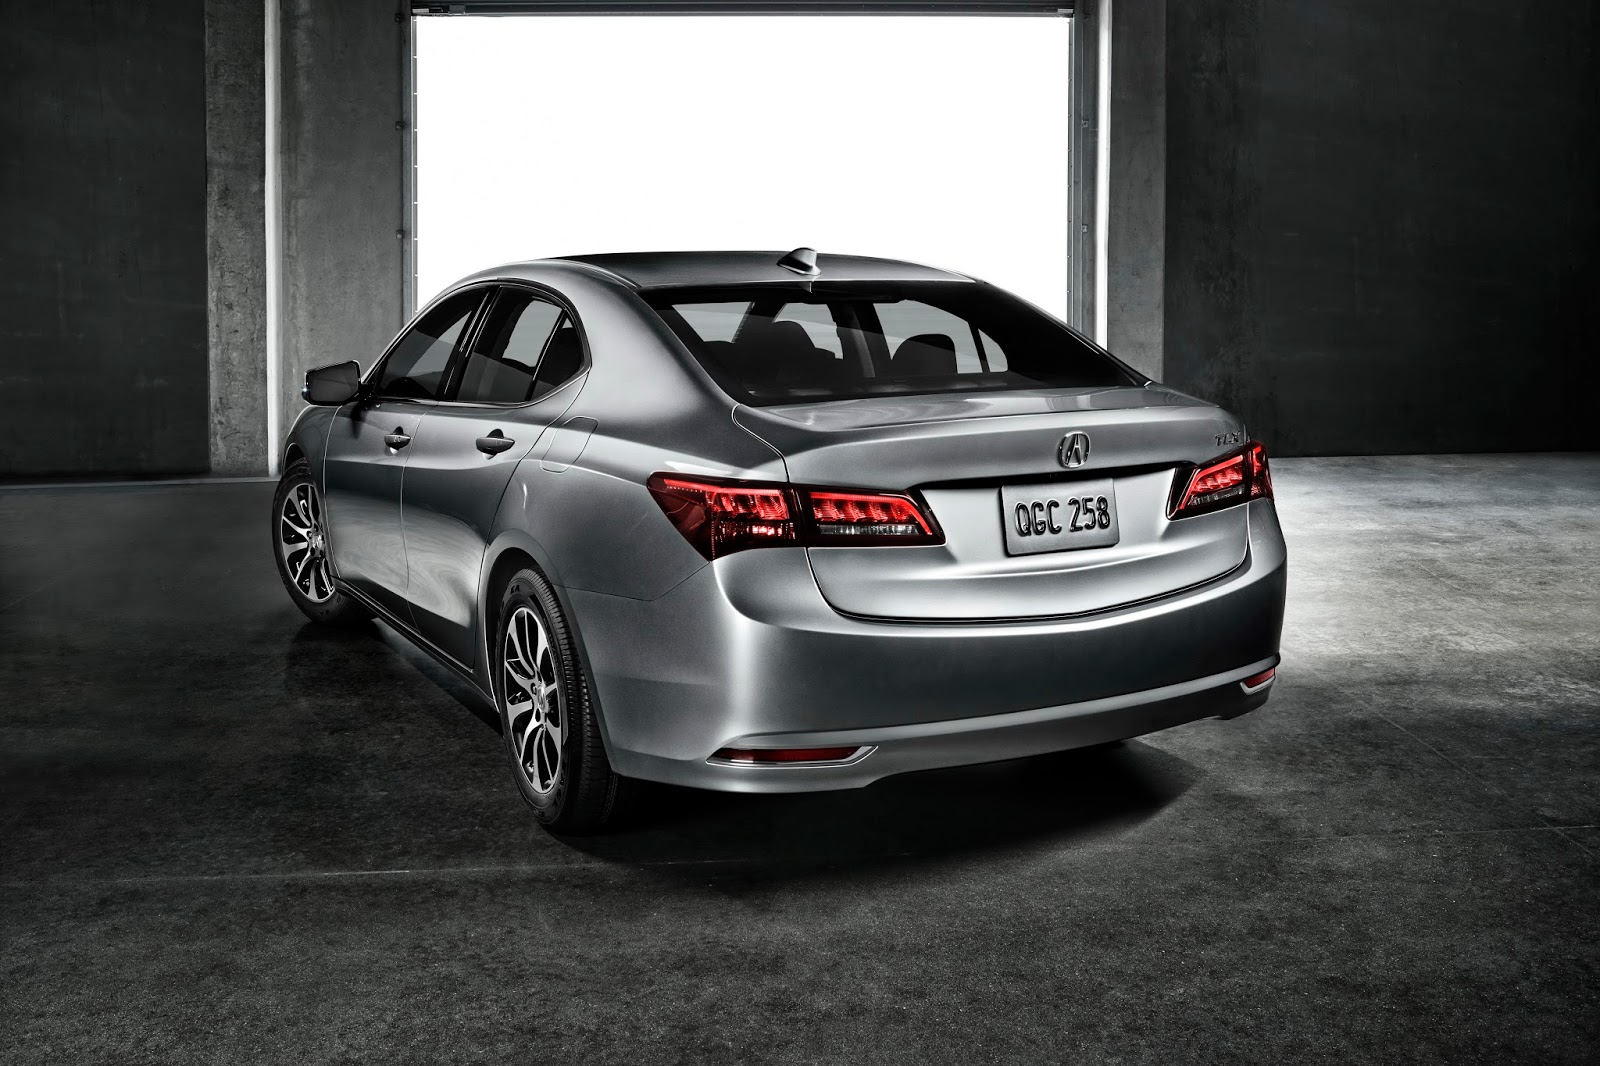 2014 - [Acura] TLX - Page 2 Acura-2015-TLX-2